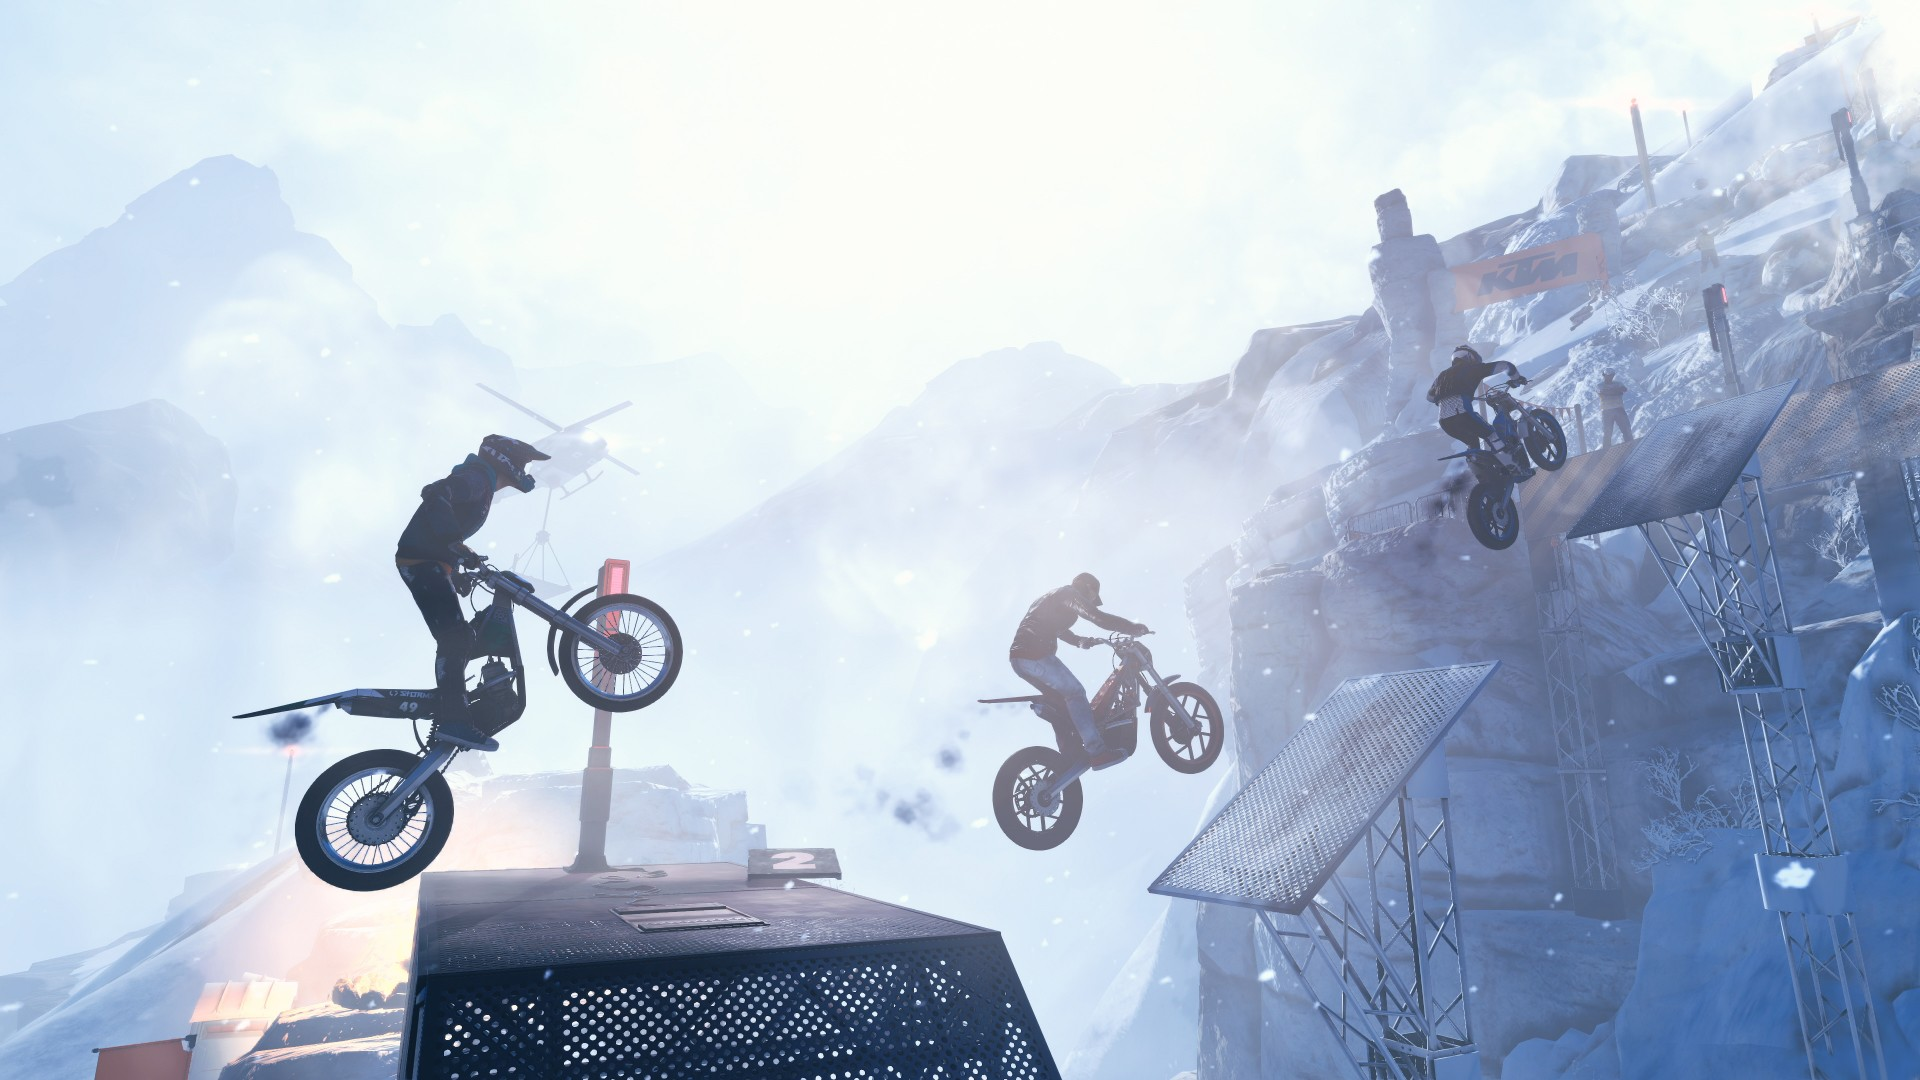 Wallpaper Trials Rising E3 2018 screenshot 4K Games 19107 1920x1080